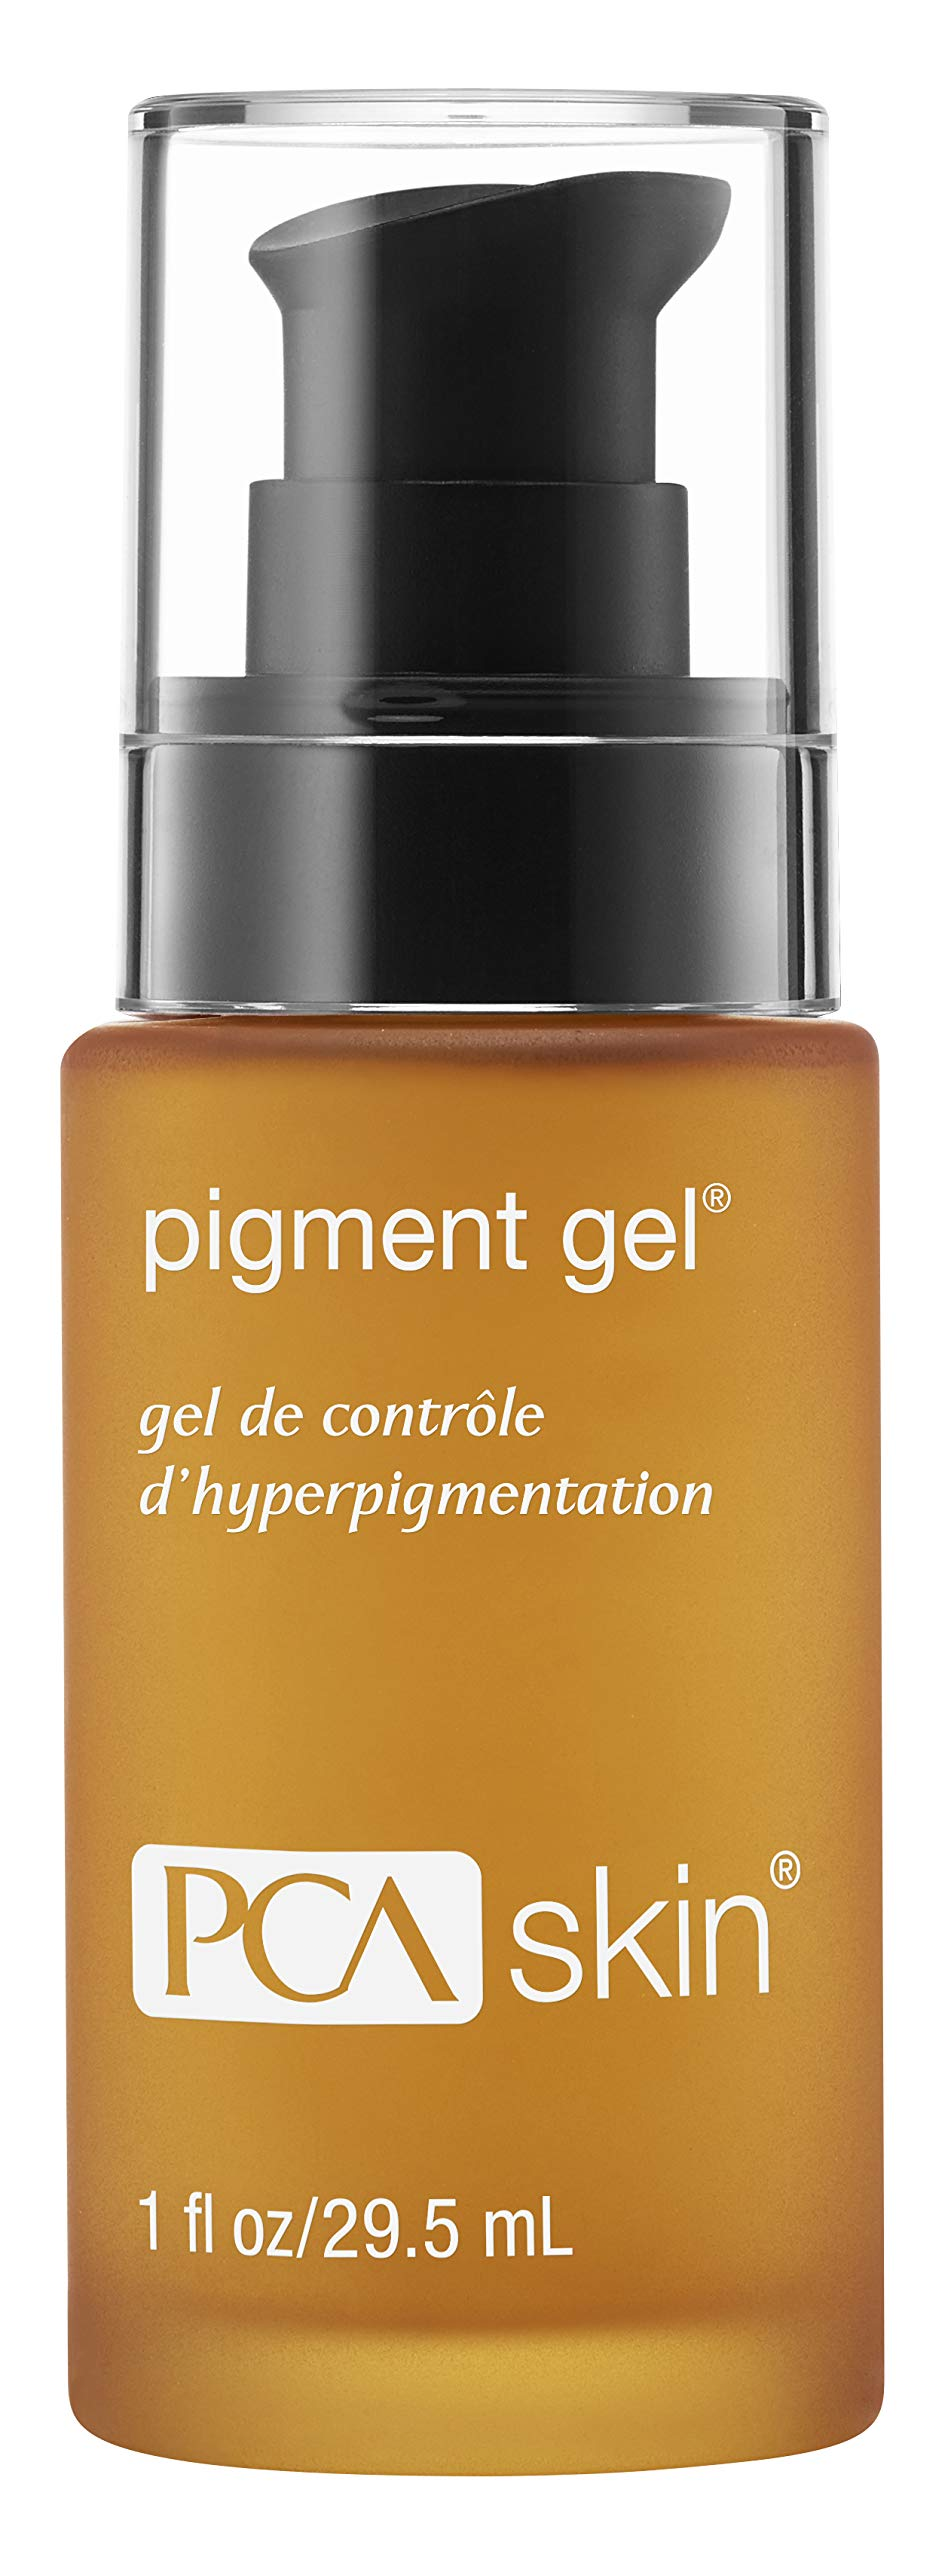 PCA SKIN Pigment Gel, Discoloration Spot Treatment Serum, 1 fluid ounce